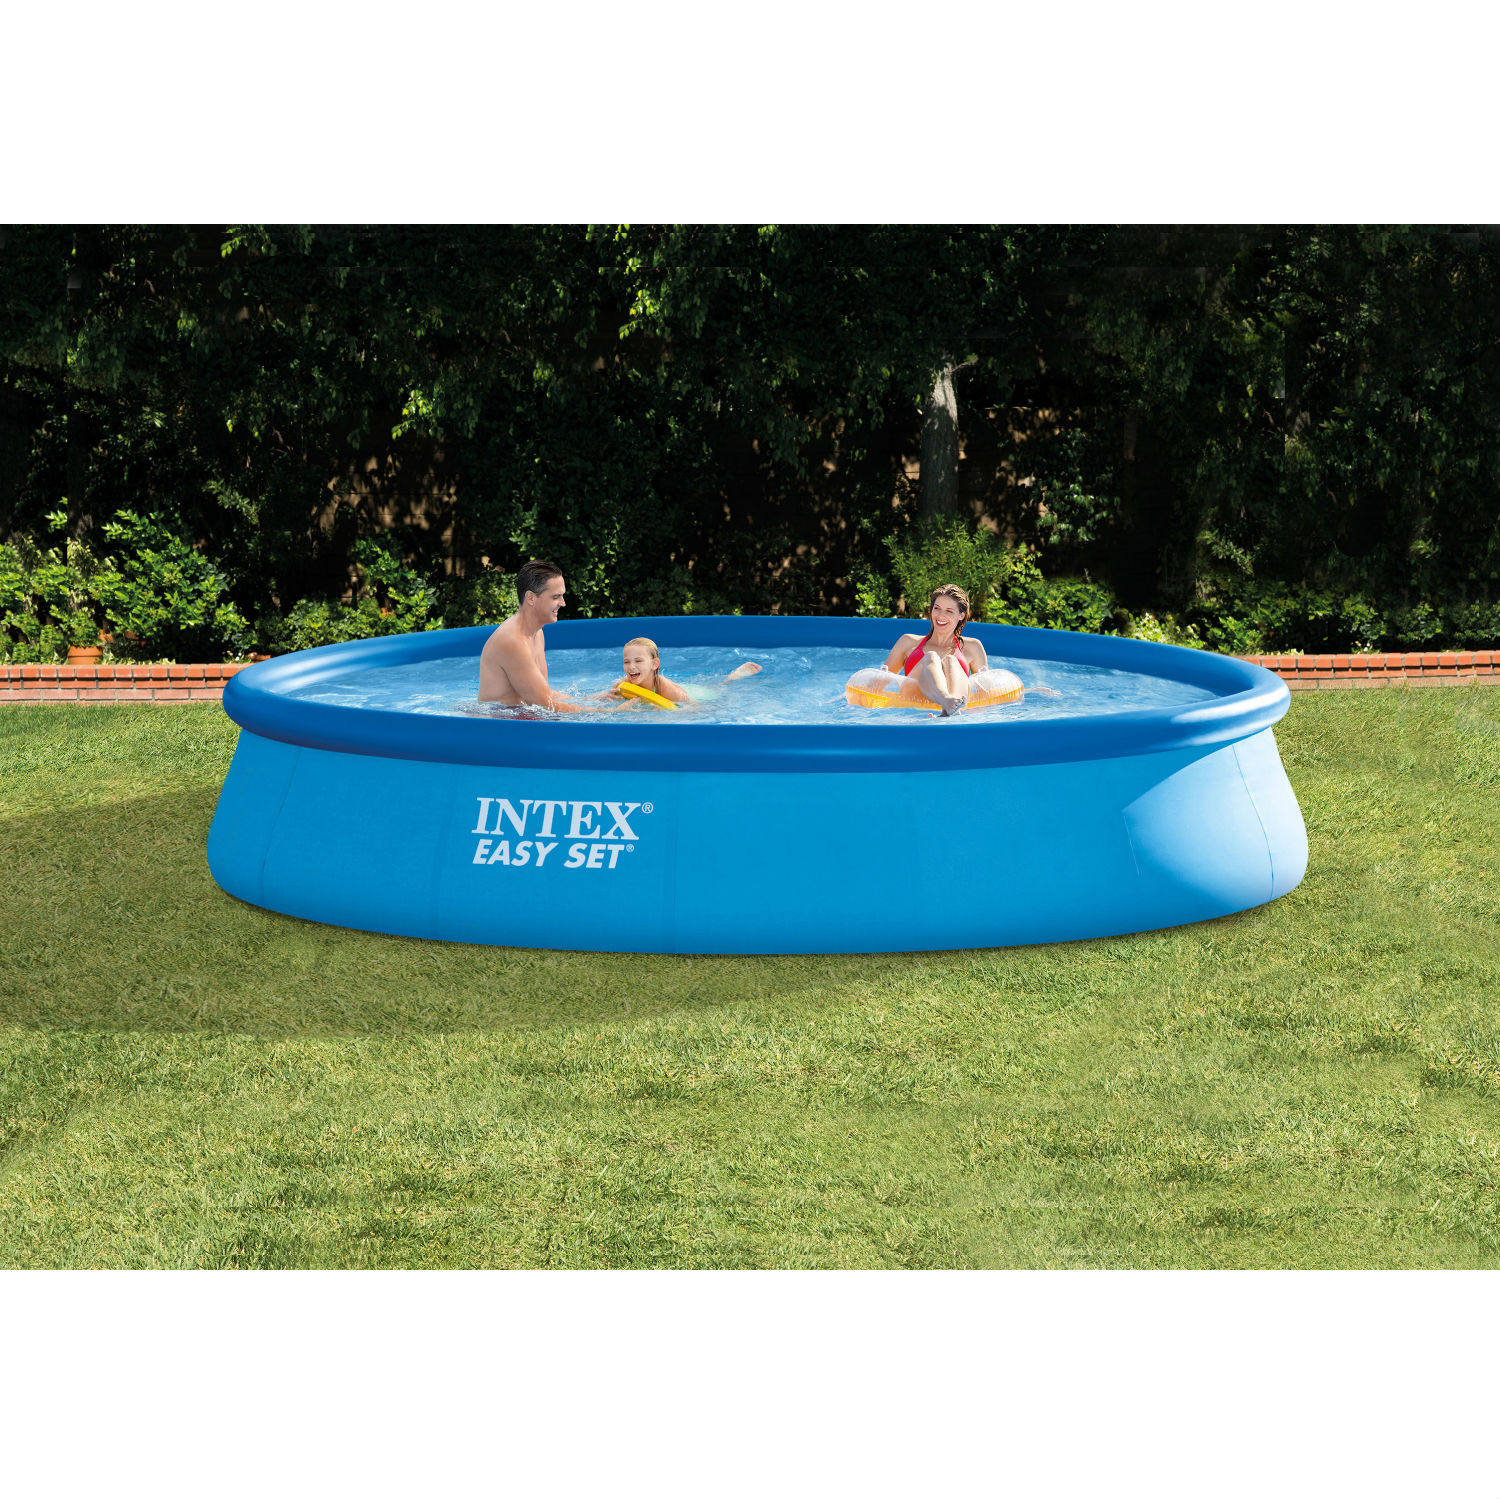 Intex 13 39 X 33 39 39 Easy Set Above Ground Swimming Pool With Filter Pump Ebay